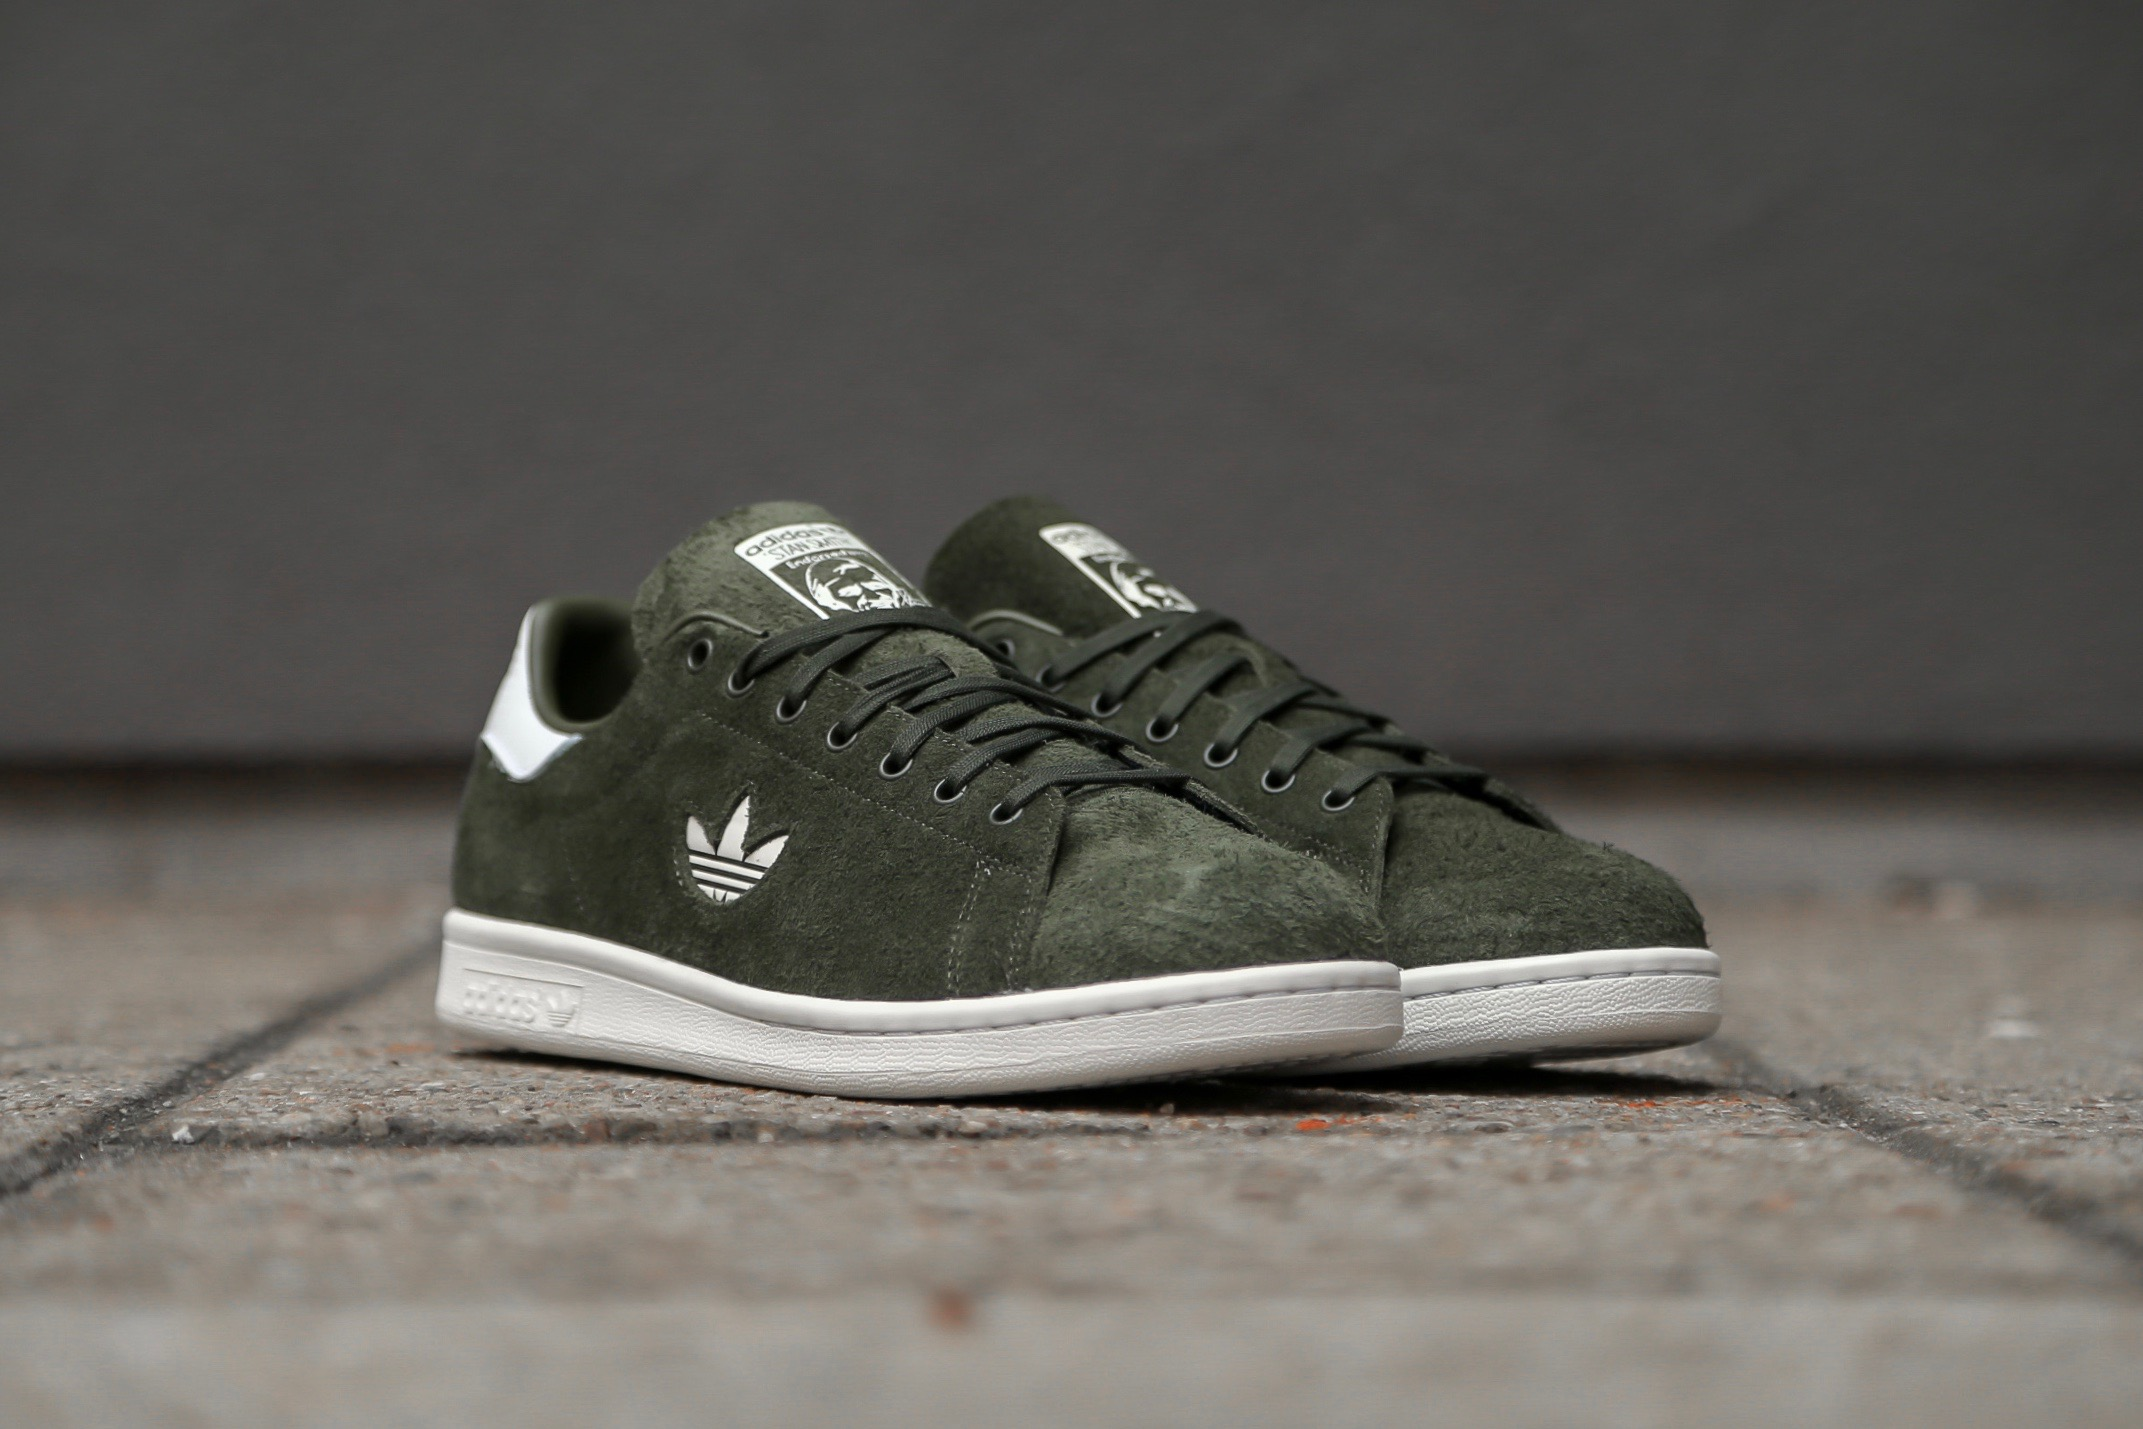 sale retailer 38fcc c0b7c adidas Originals Stan Smith - Night Cargo / Ftwr White / Crystal White